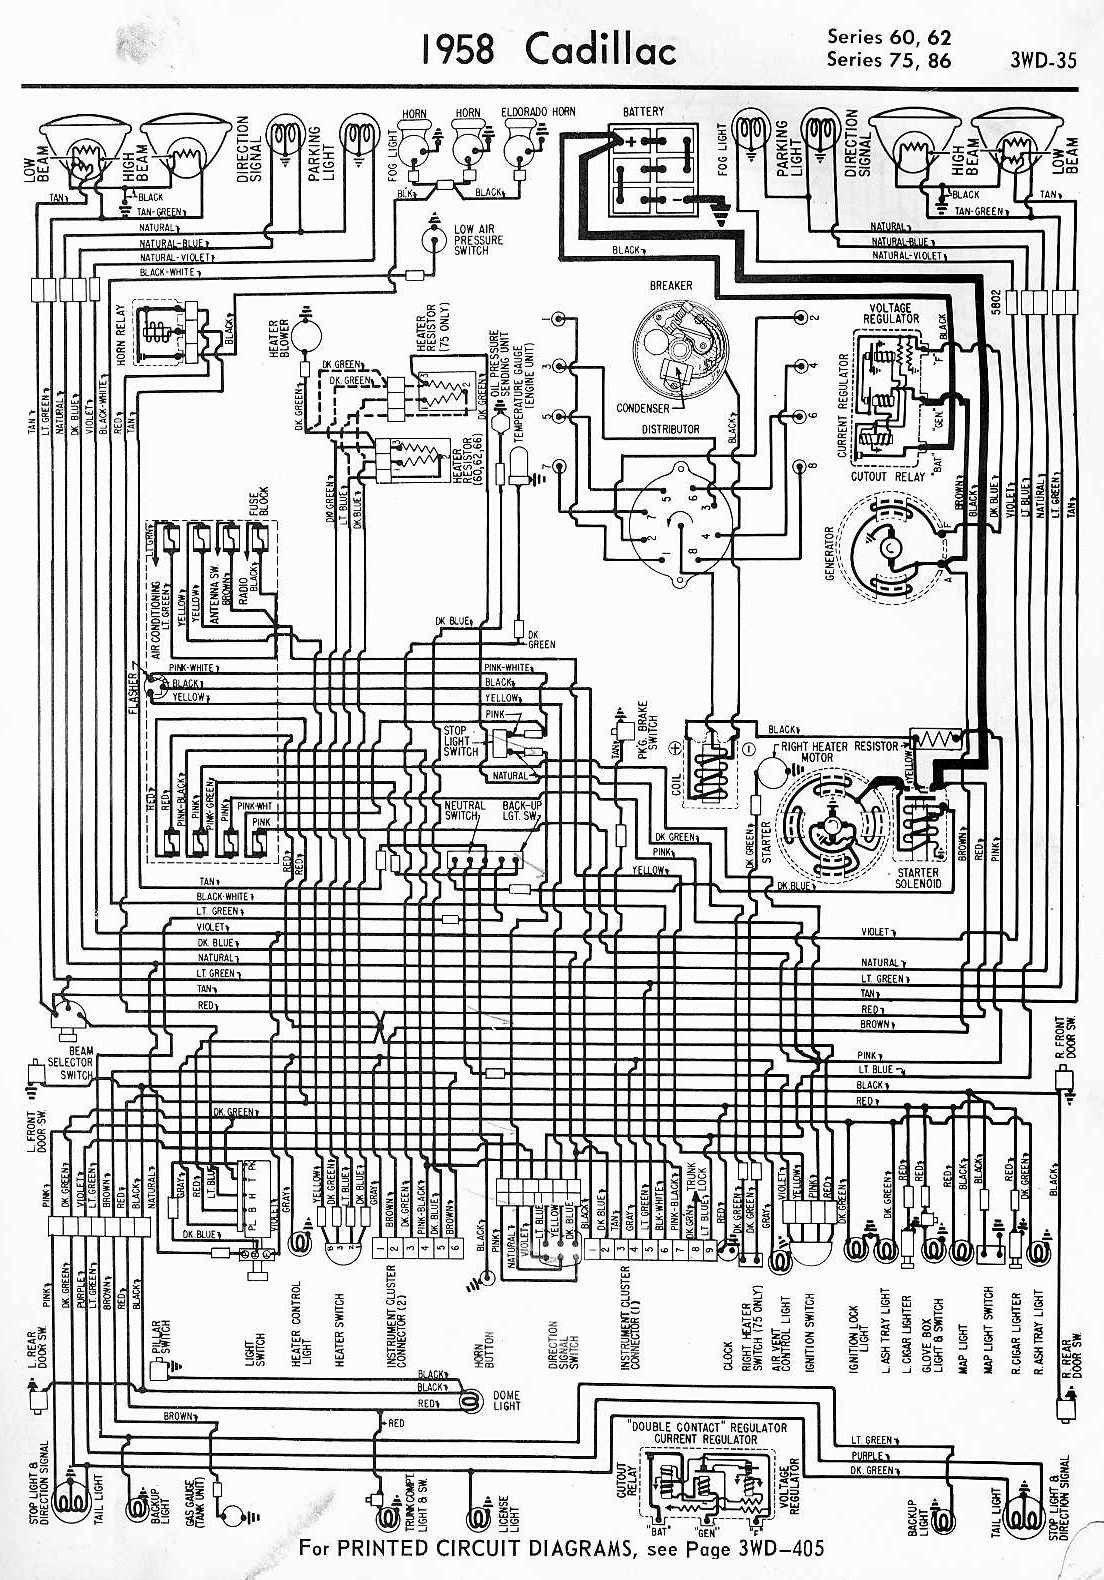 1954 cadillac wiring diagram number one wiring diagram sources 1954 cadillac wiring diagram wiring